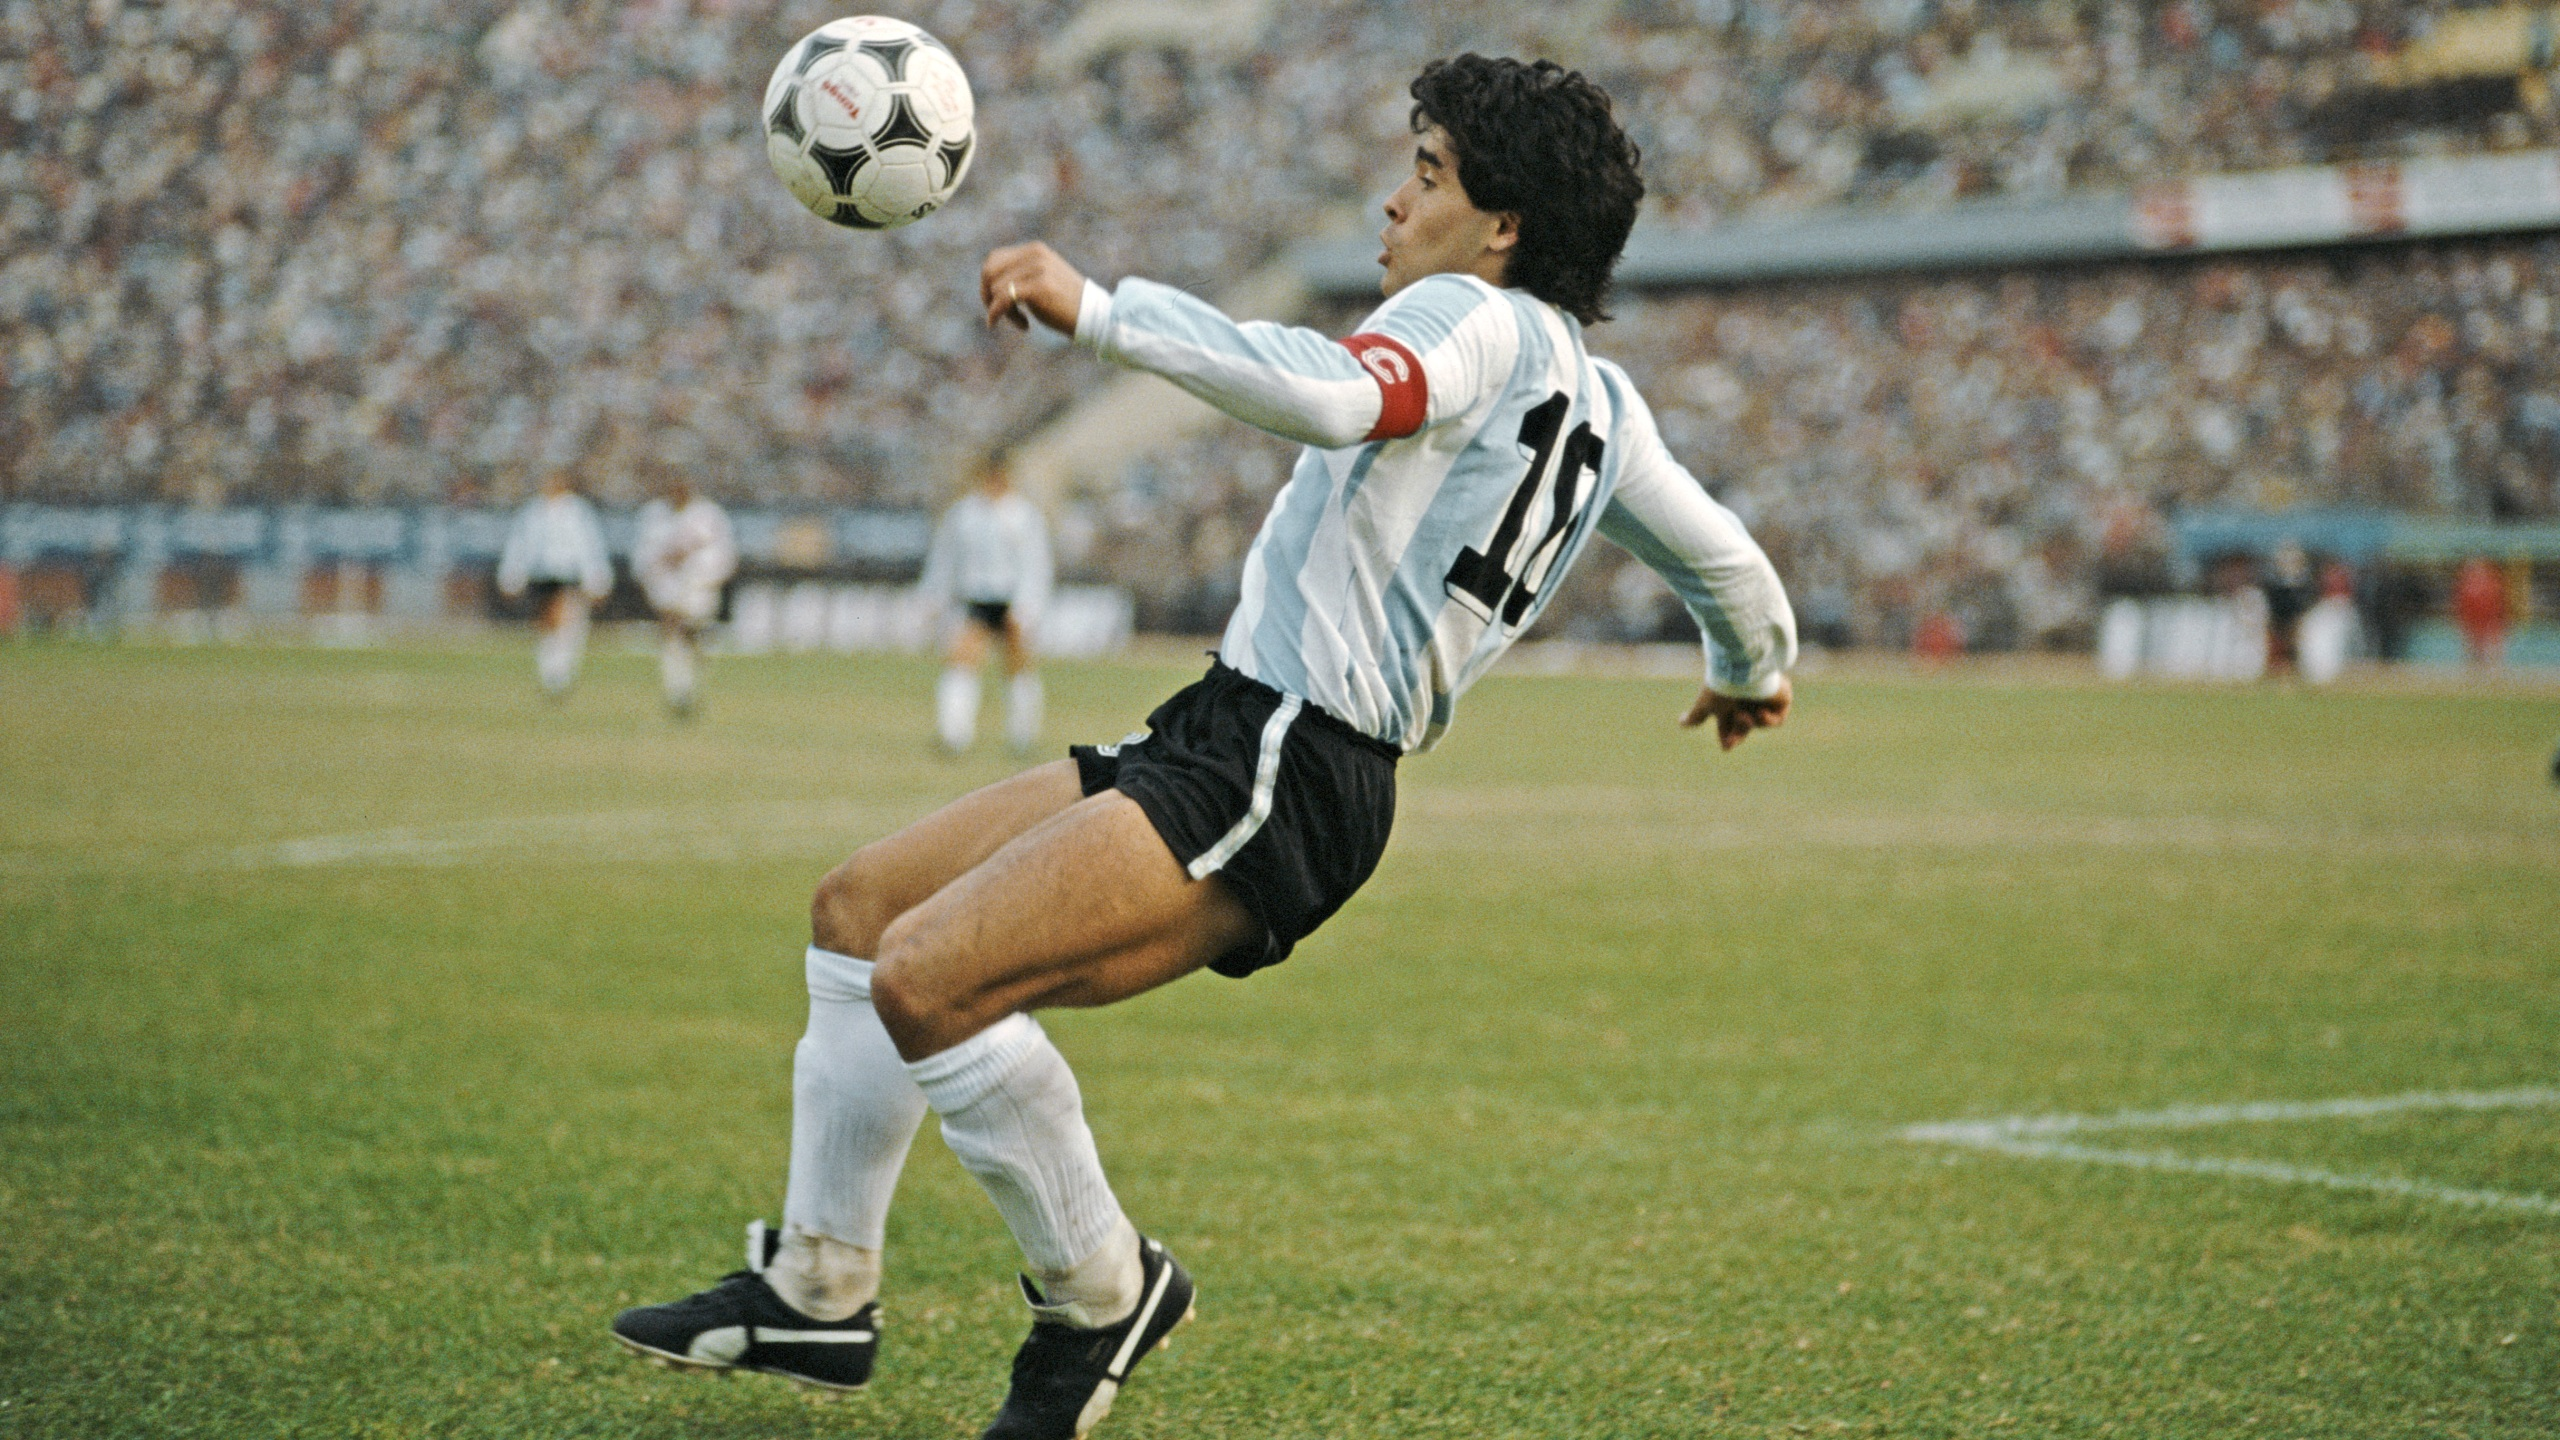 Argentina player Diego Maradona in action during a 1986 FIFA World Cup qualifying match against Peru at the National Stadium on June 23, 1985 in Lima, Peru. (David Cannon/Allsport/Getty Images/Hulton Archive)